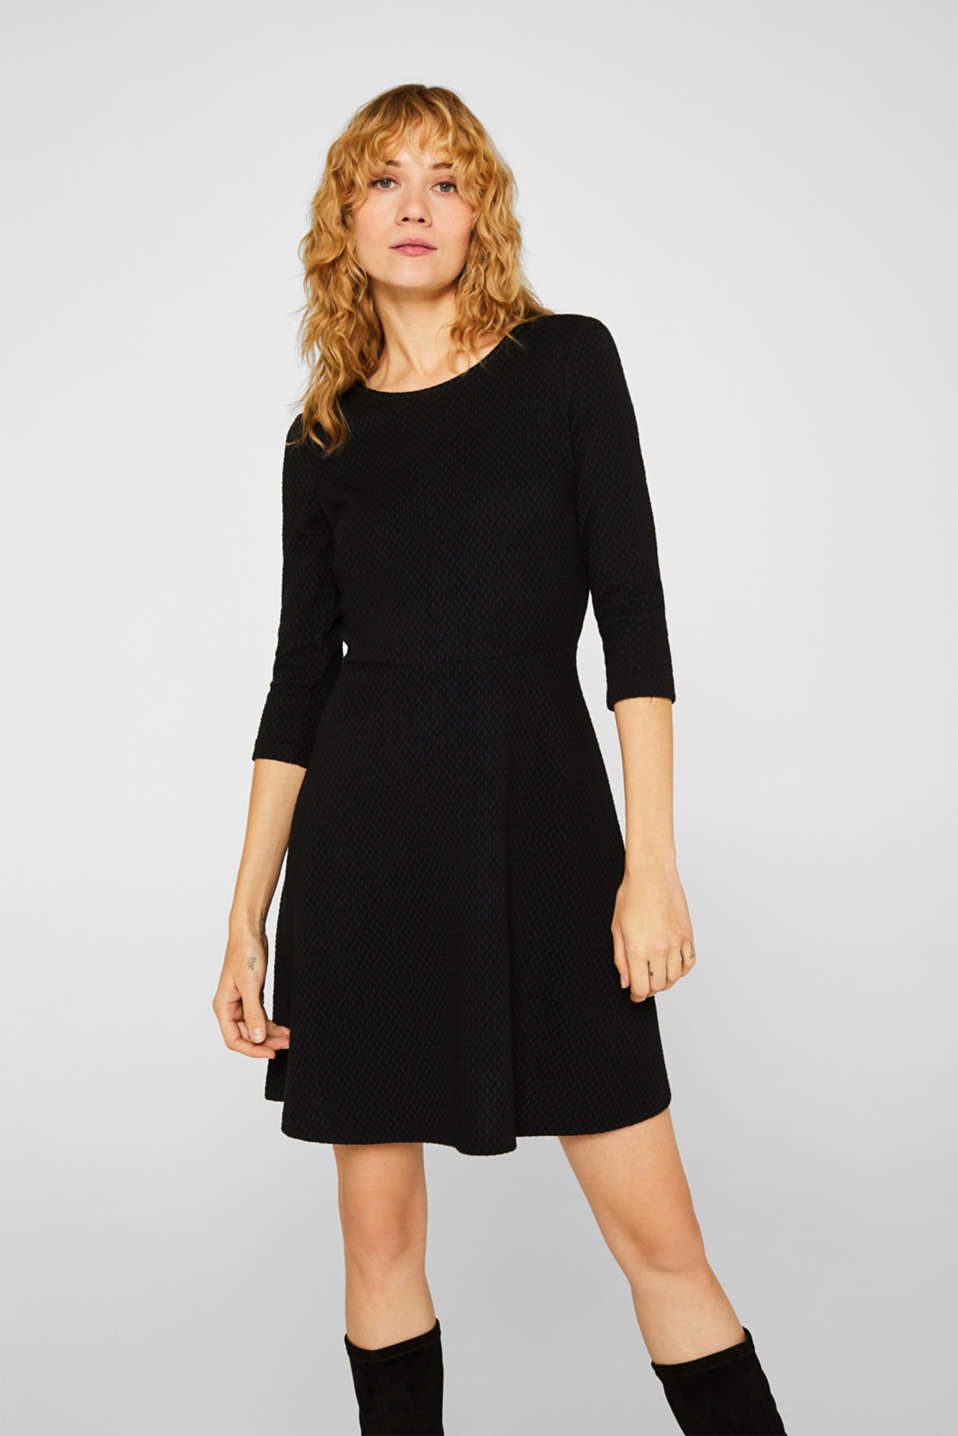 Esprit - Stretchy, textured dress